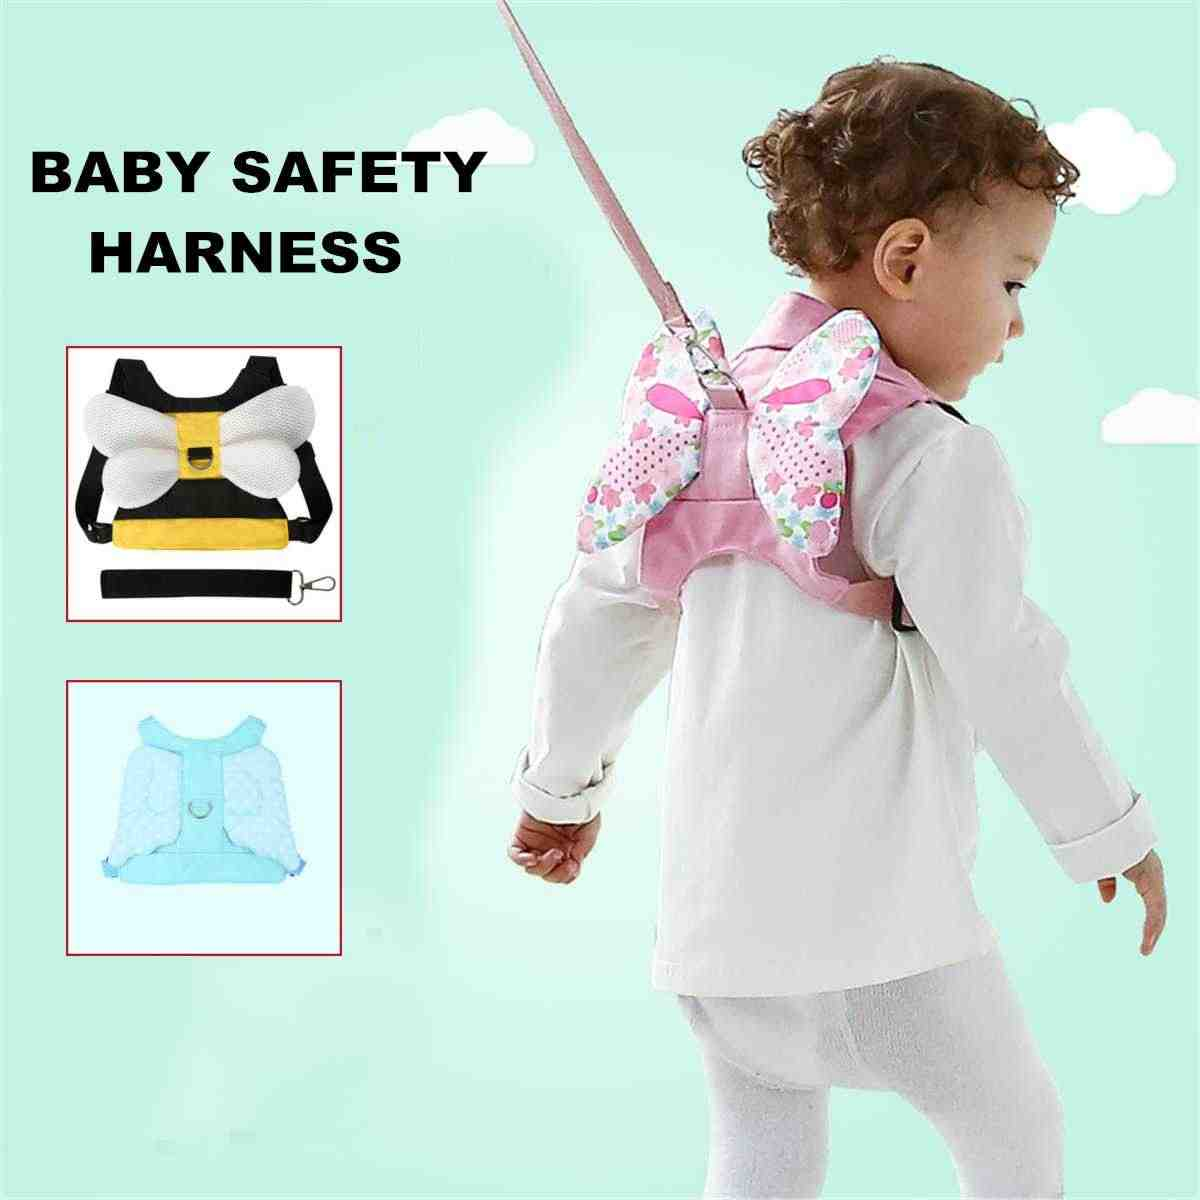 Baby Toddler Safety Harness Anti-Lost Back Belt Leash Walker Shoulder Strap Walking Learning Assistant Outdoor Activity Gear